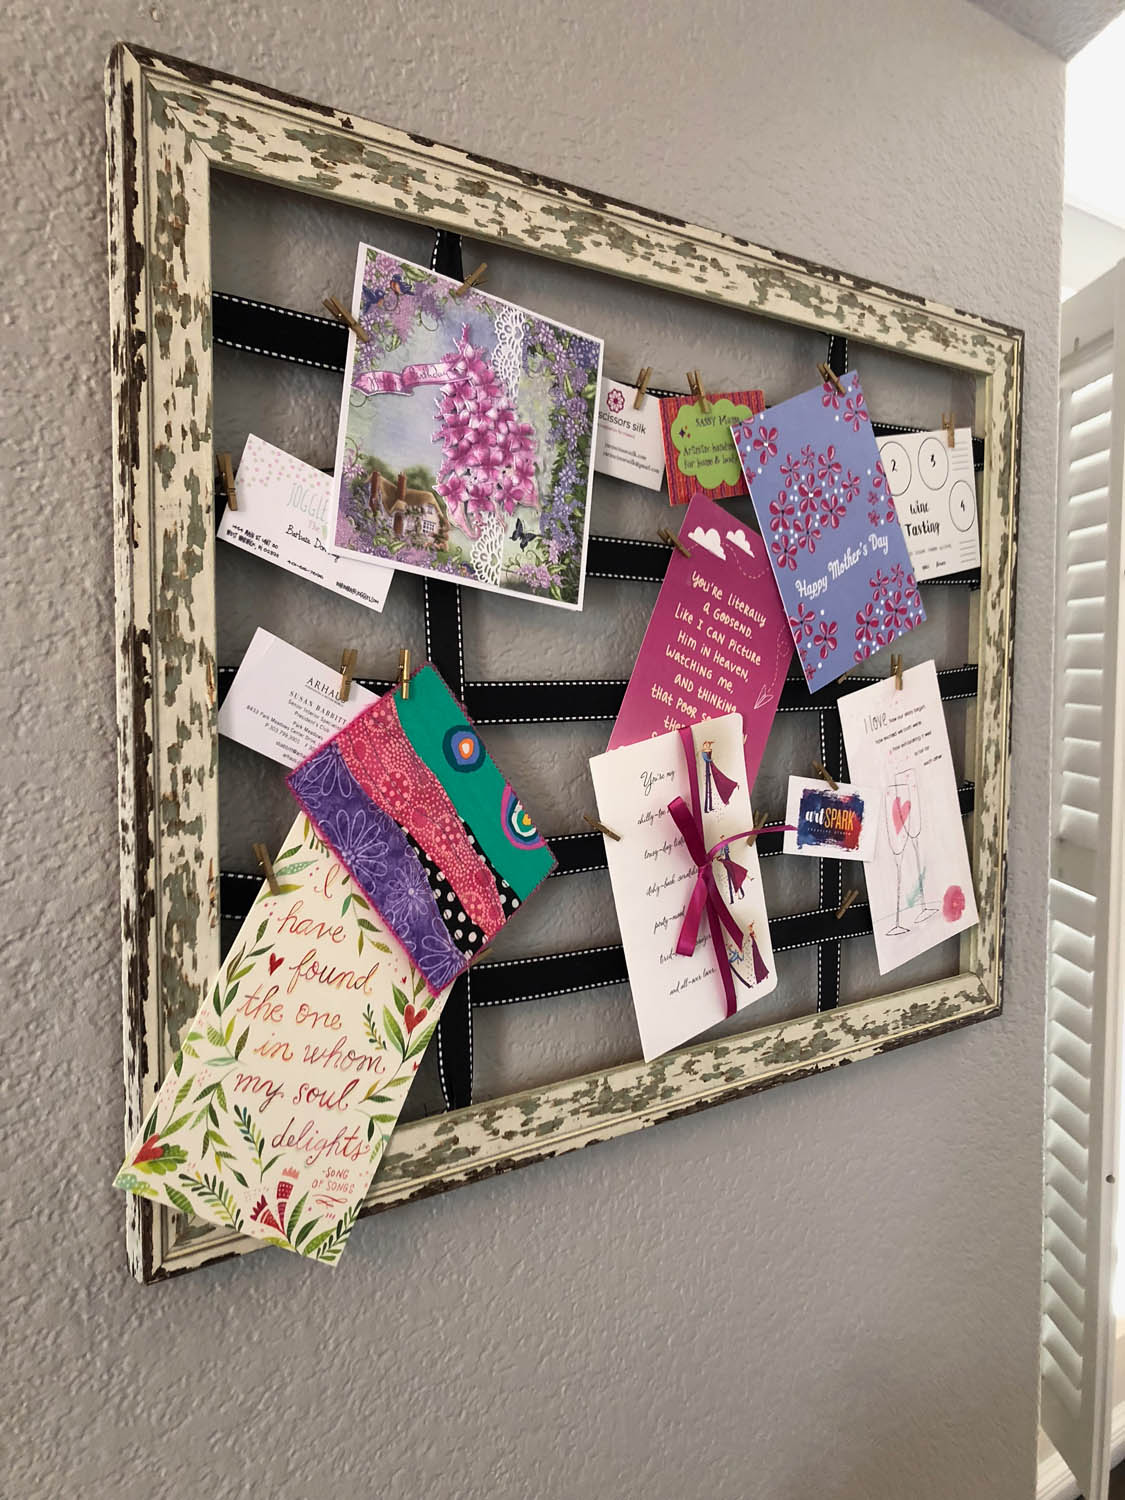 DIY clipboard from an old frame displaying greeting cards